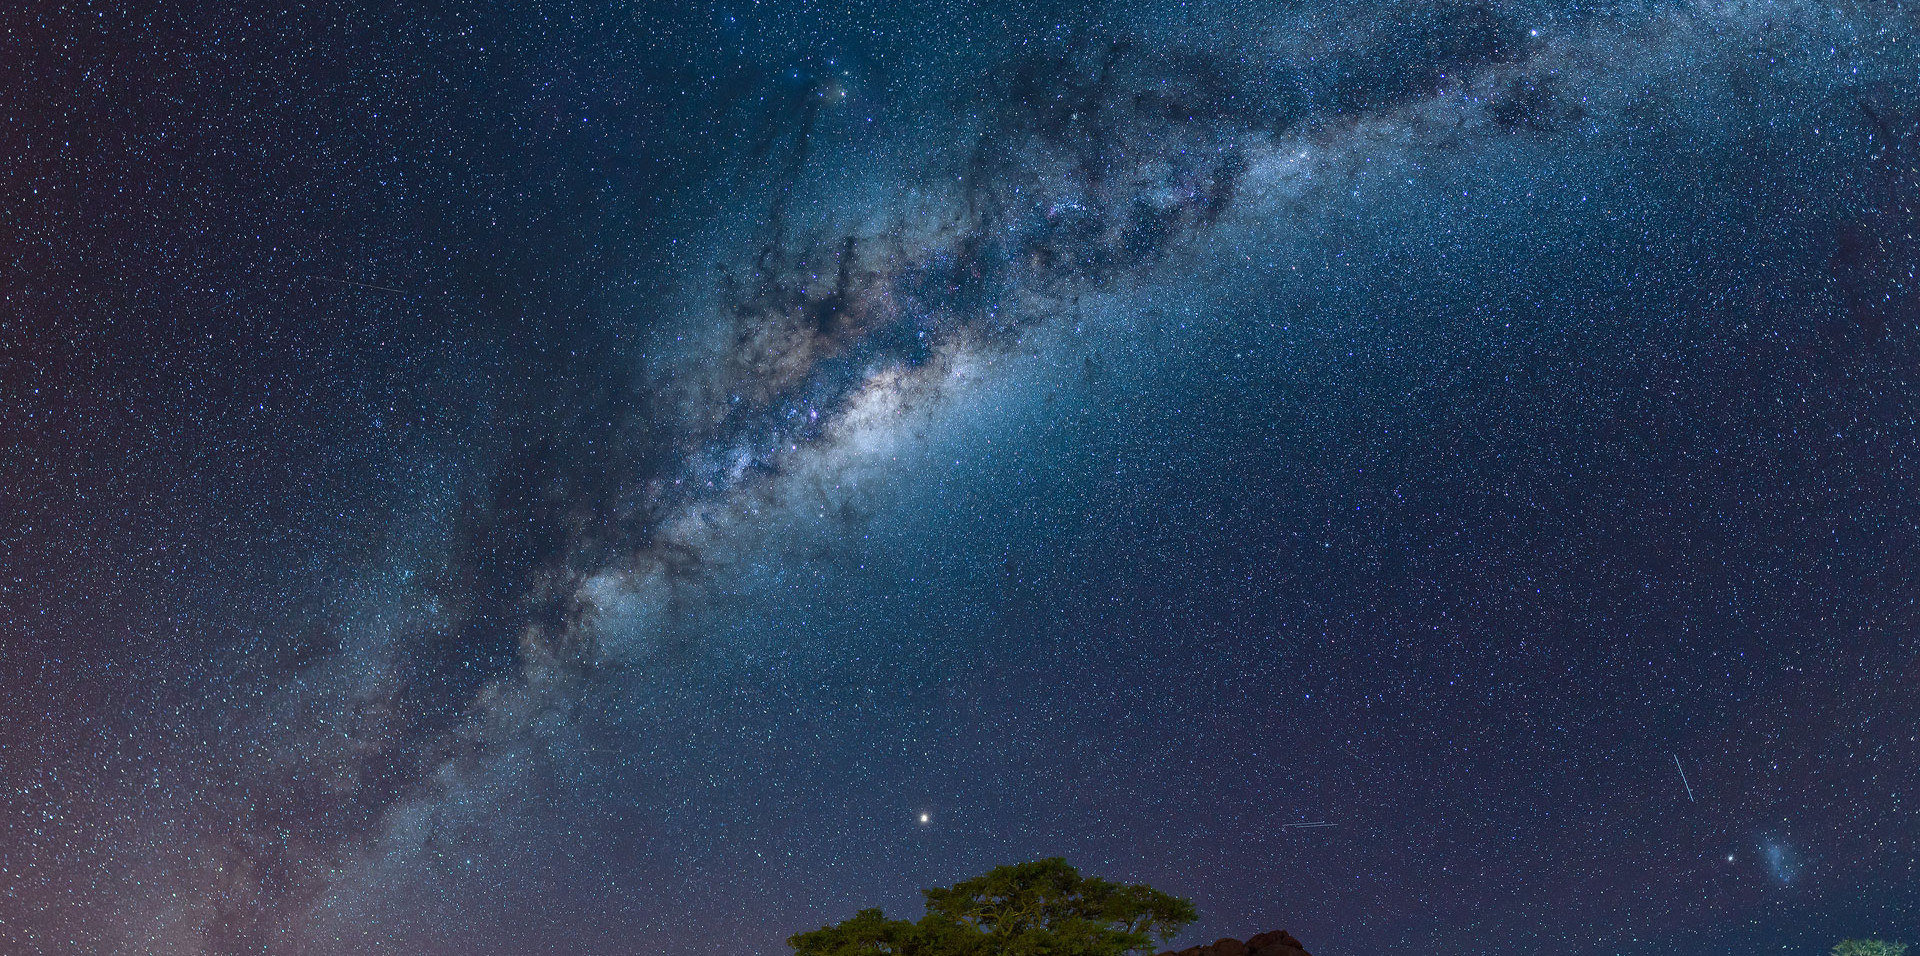 Milky way over campsite